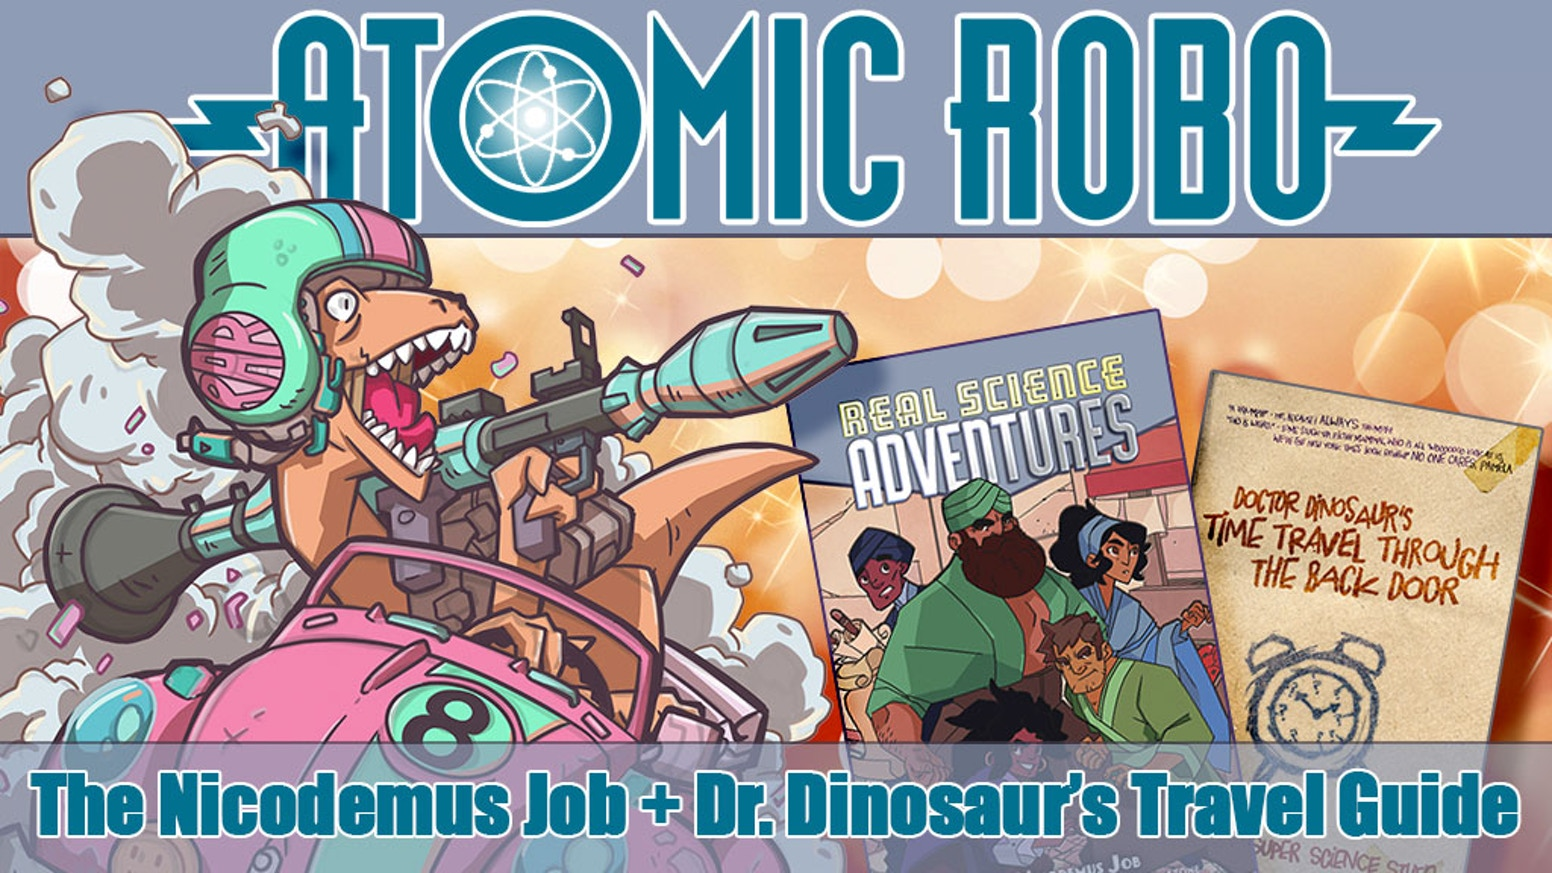 A hardcover of The Nicodemus Job, the greatest heist of the 11th century! And Dr. Dinosaur's stupid Guide to Time Travel Tourism.